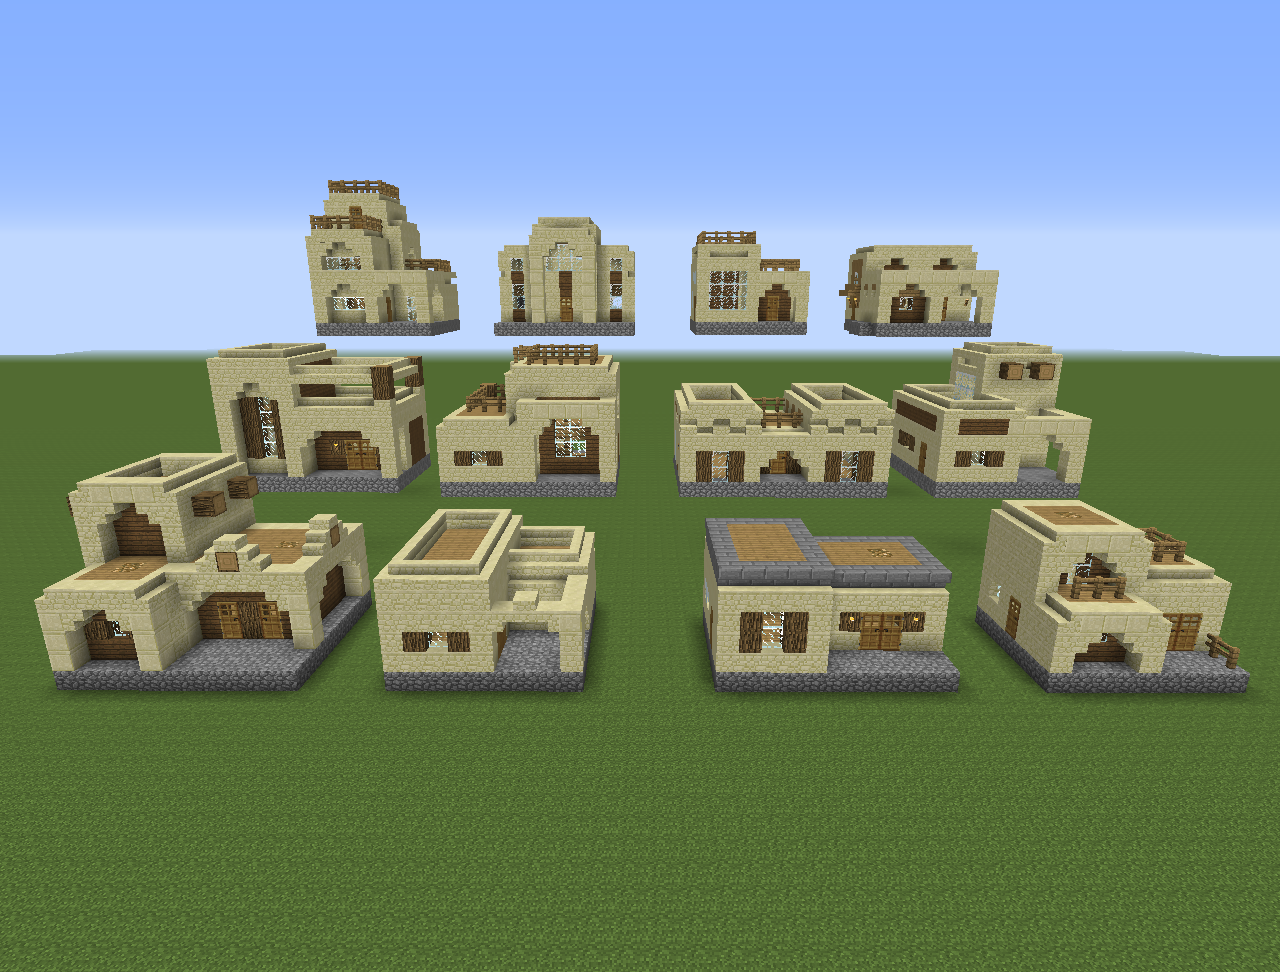 12 house designs x 2 building styles 24 unique houses minecraft pinterest minecraft - Minecraft house ideas ...